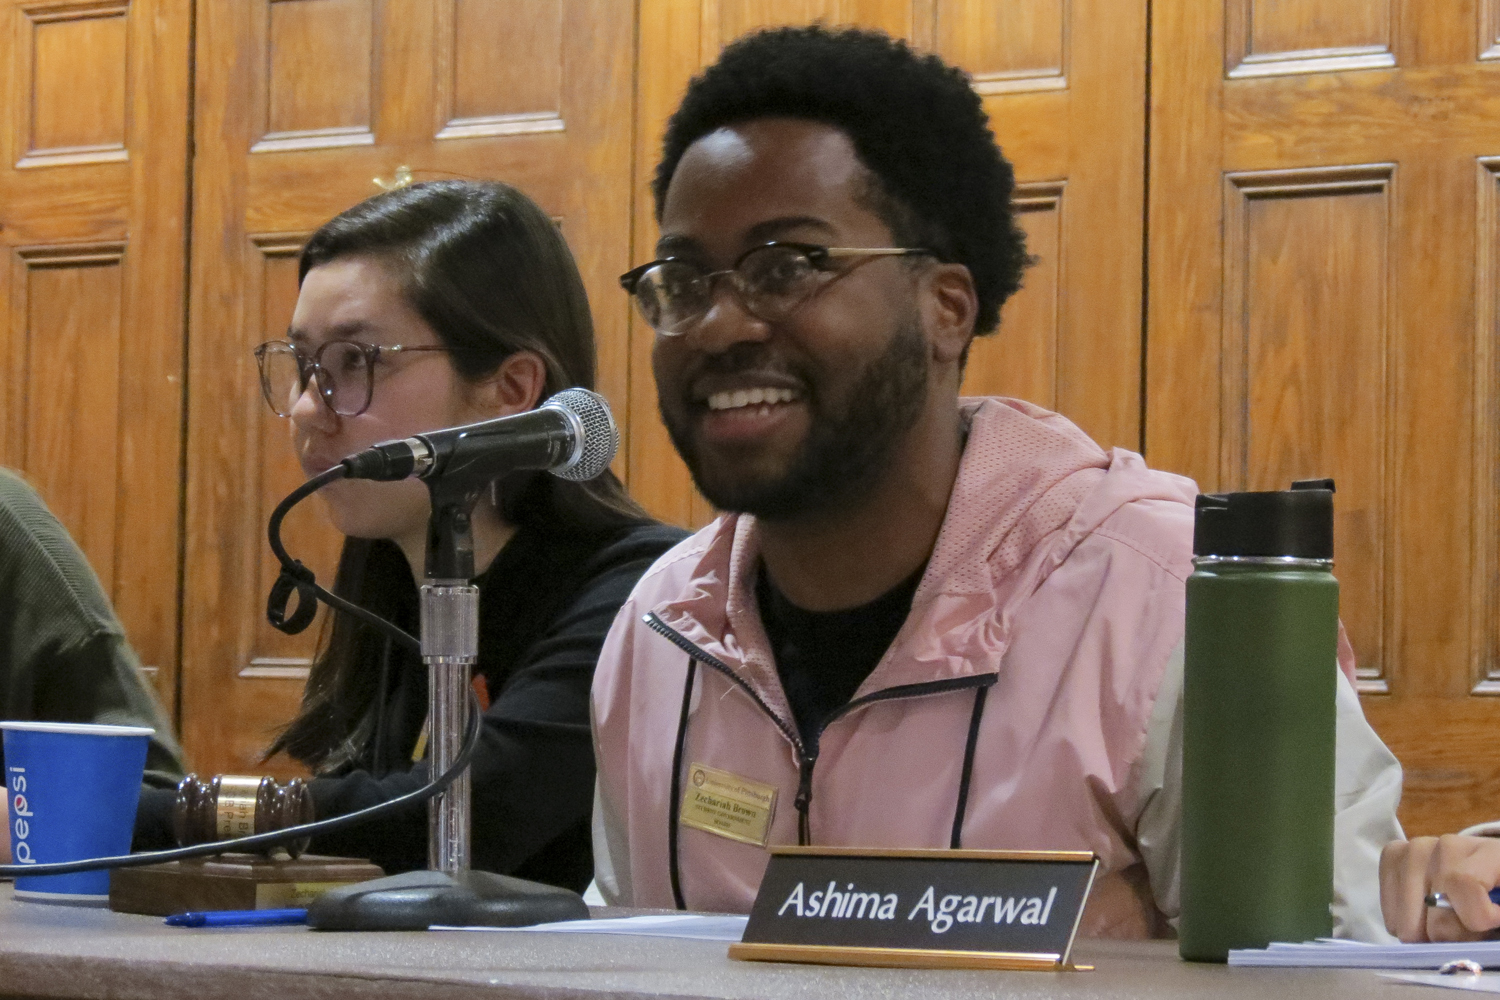 SGB President Zechariah Brown discusses the updates to the Student Organization Resource Center's naming guidelines at Tuesday evening's weekly meeting.